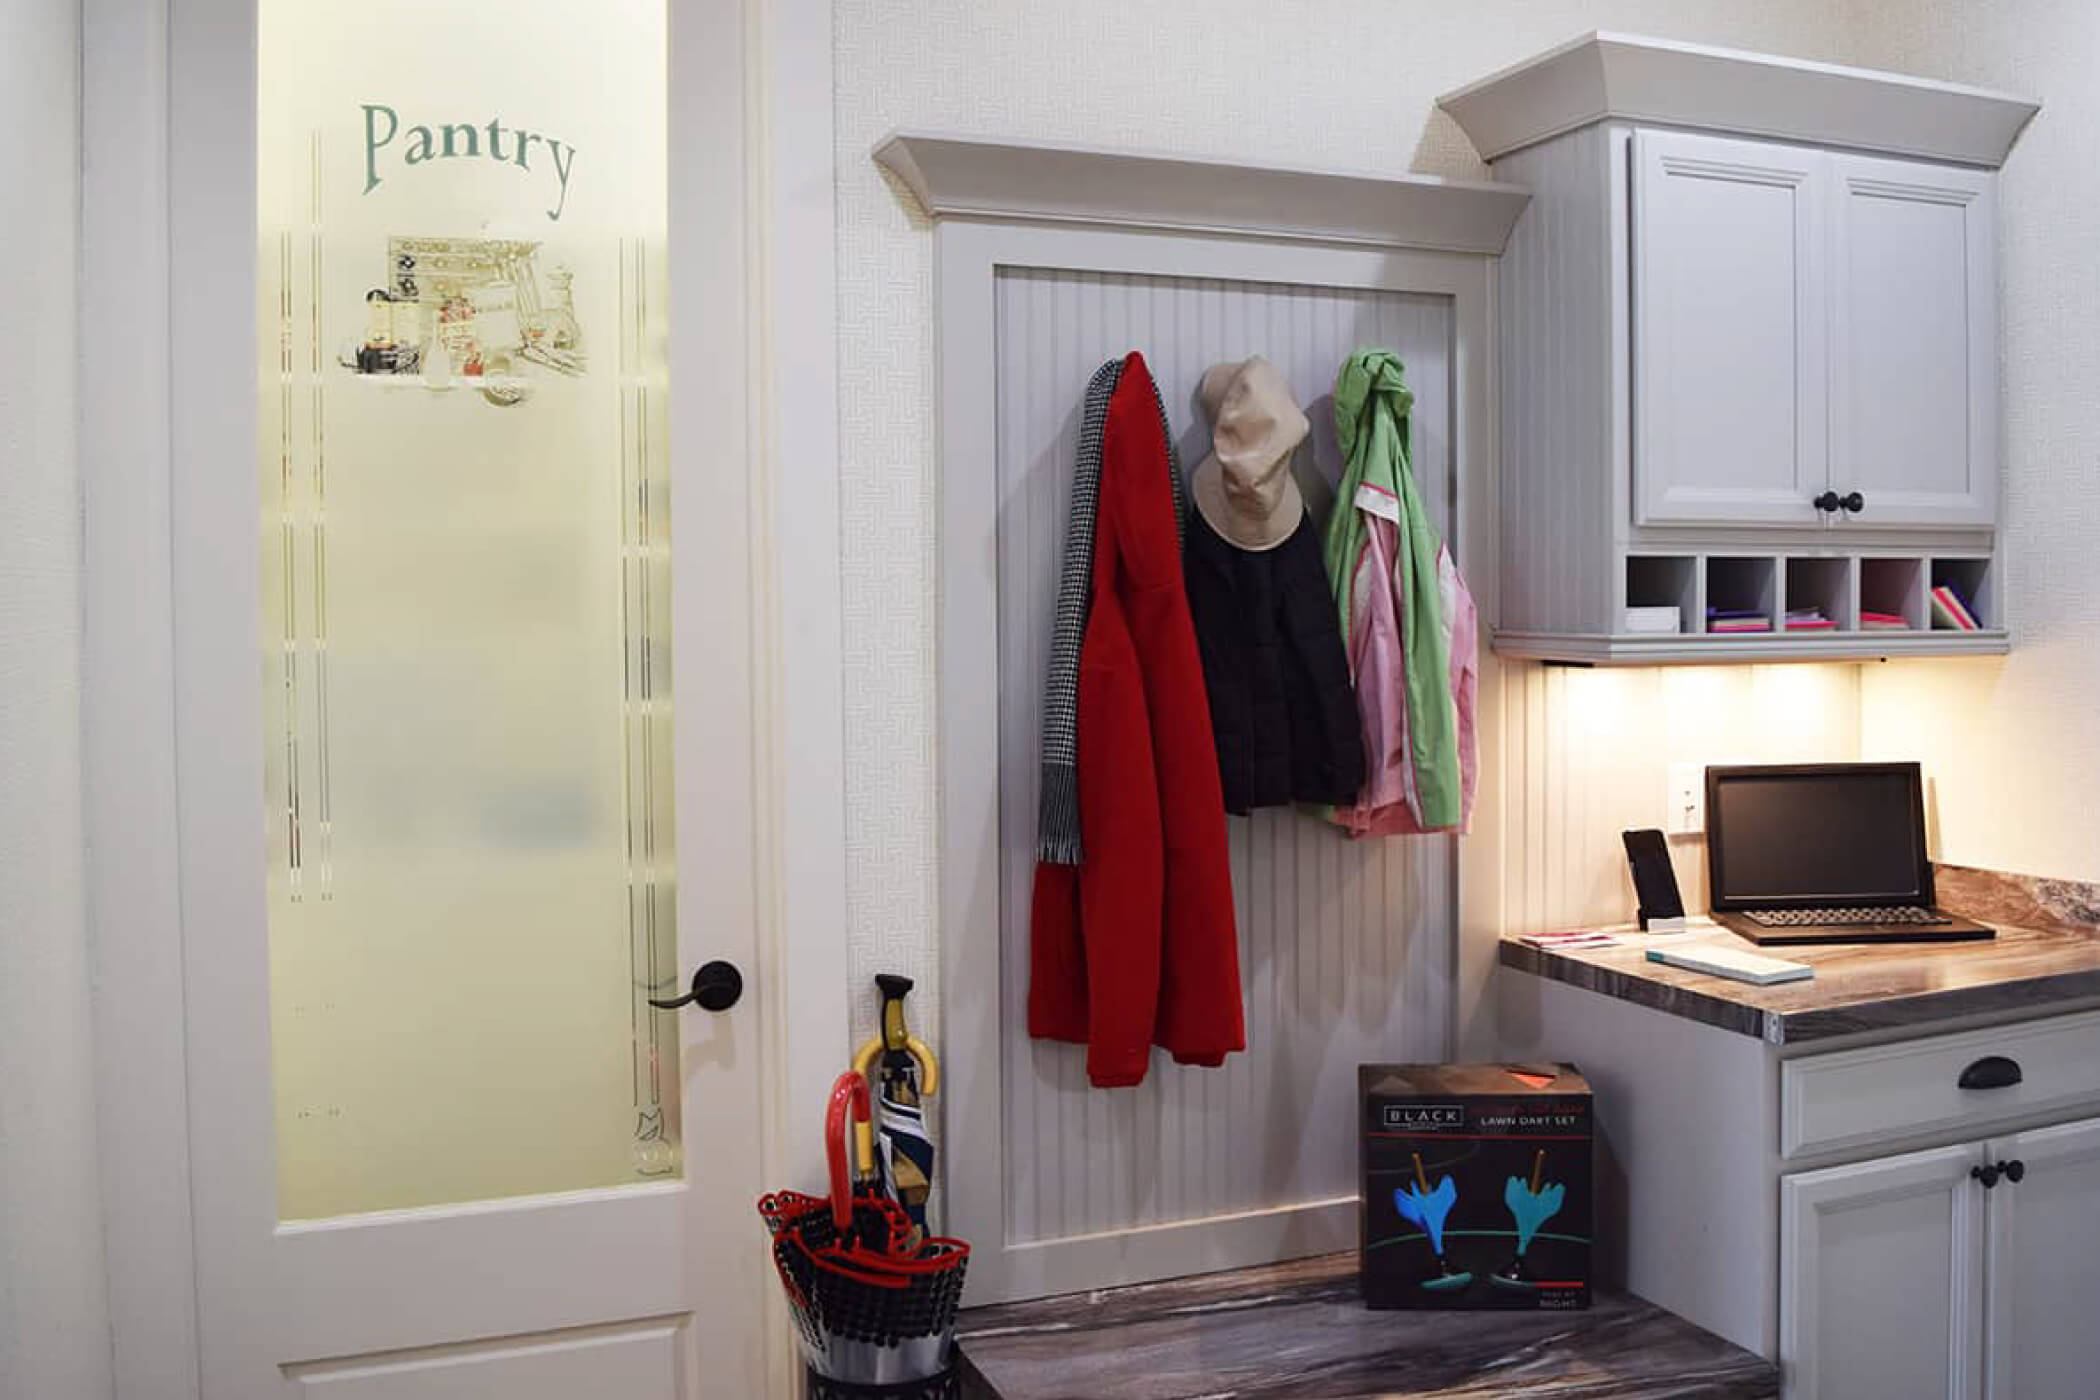 Mud room with red jacket hanging above the landing station in a custom home located in Carmel